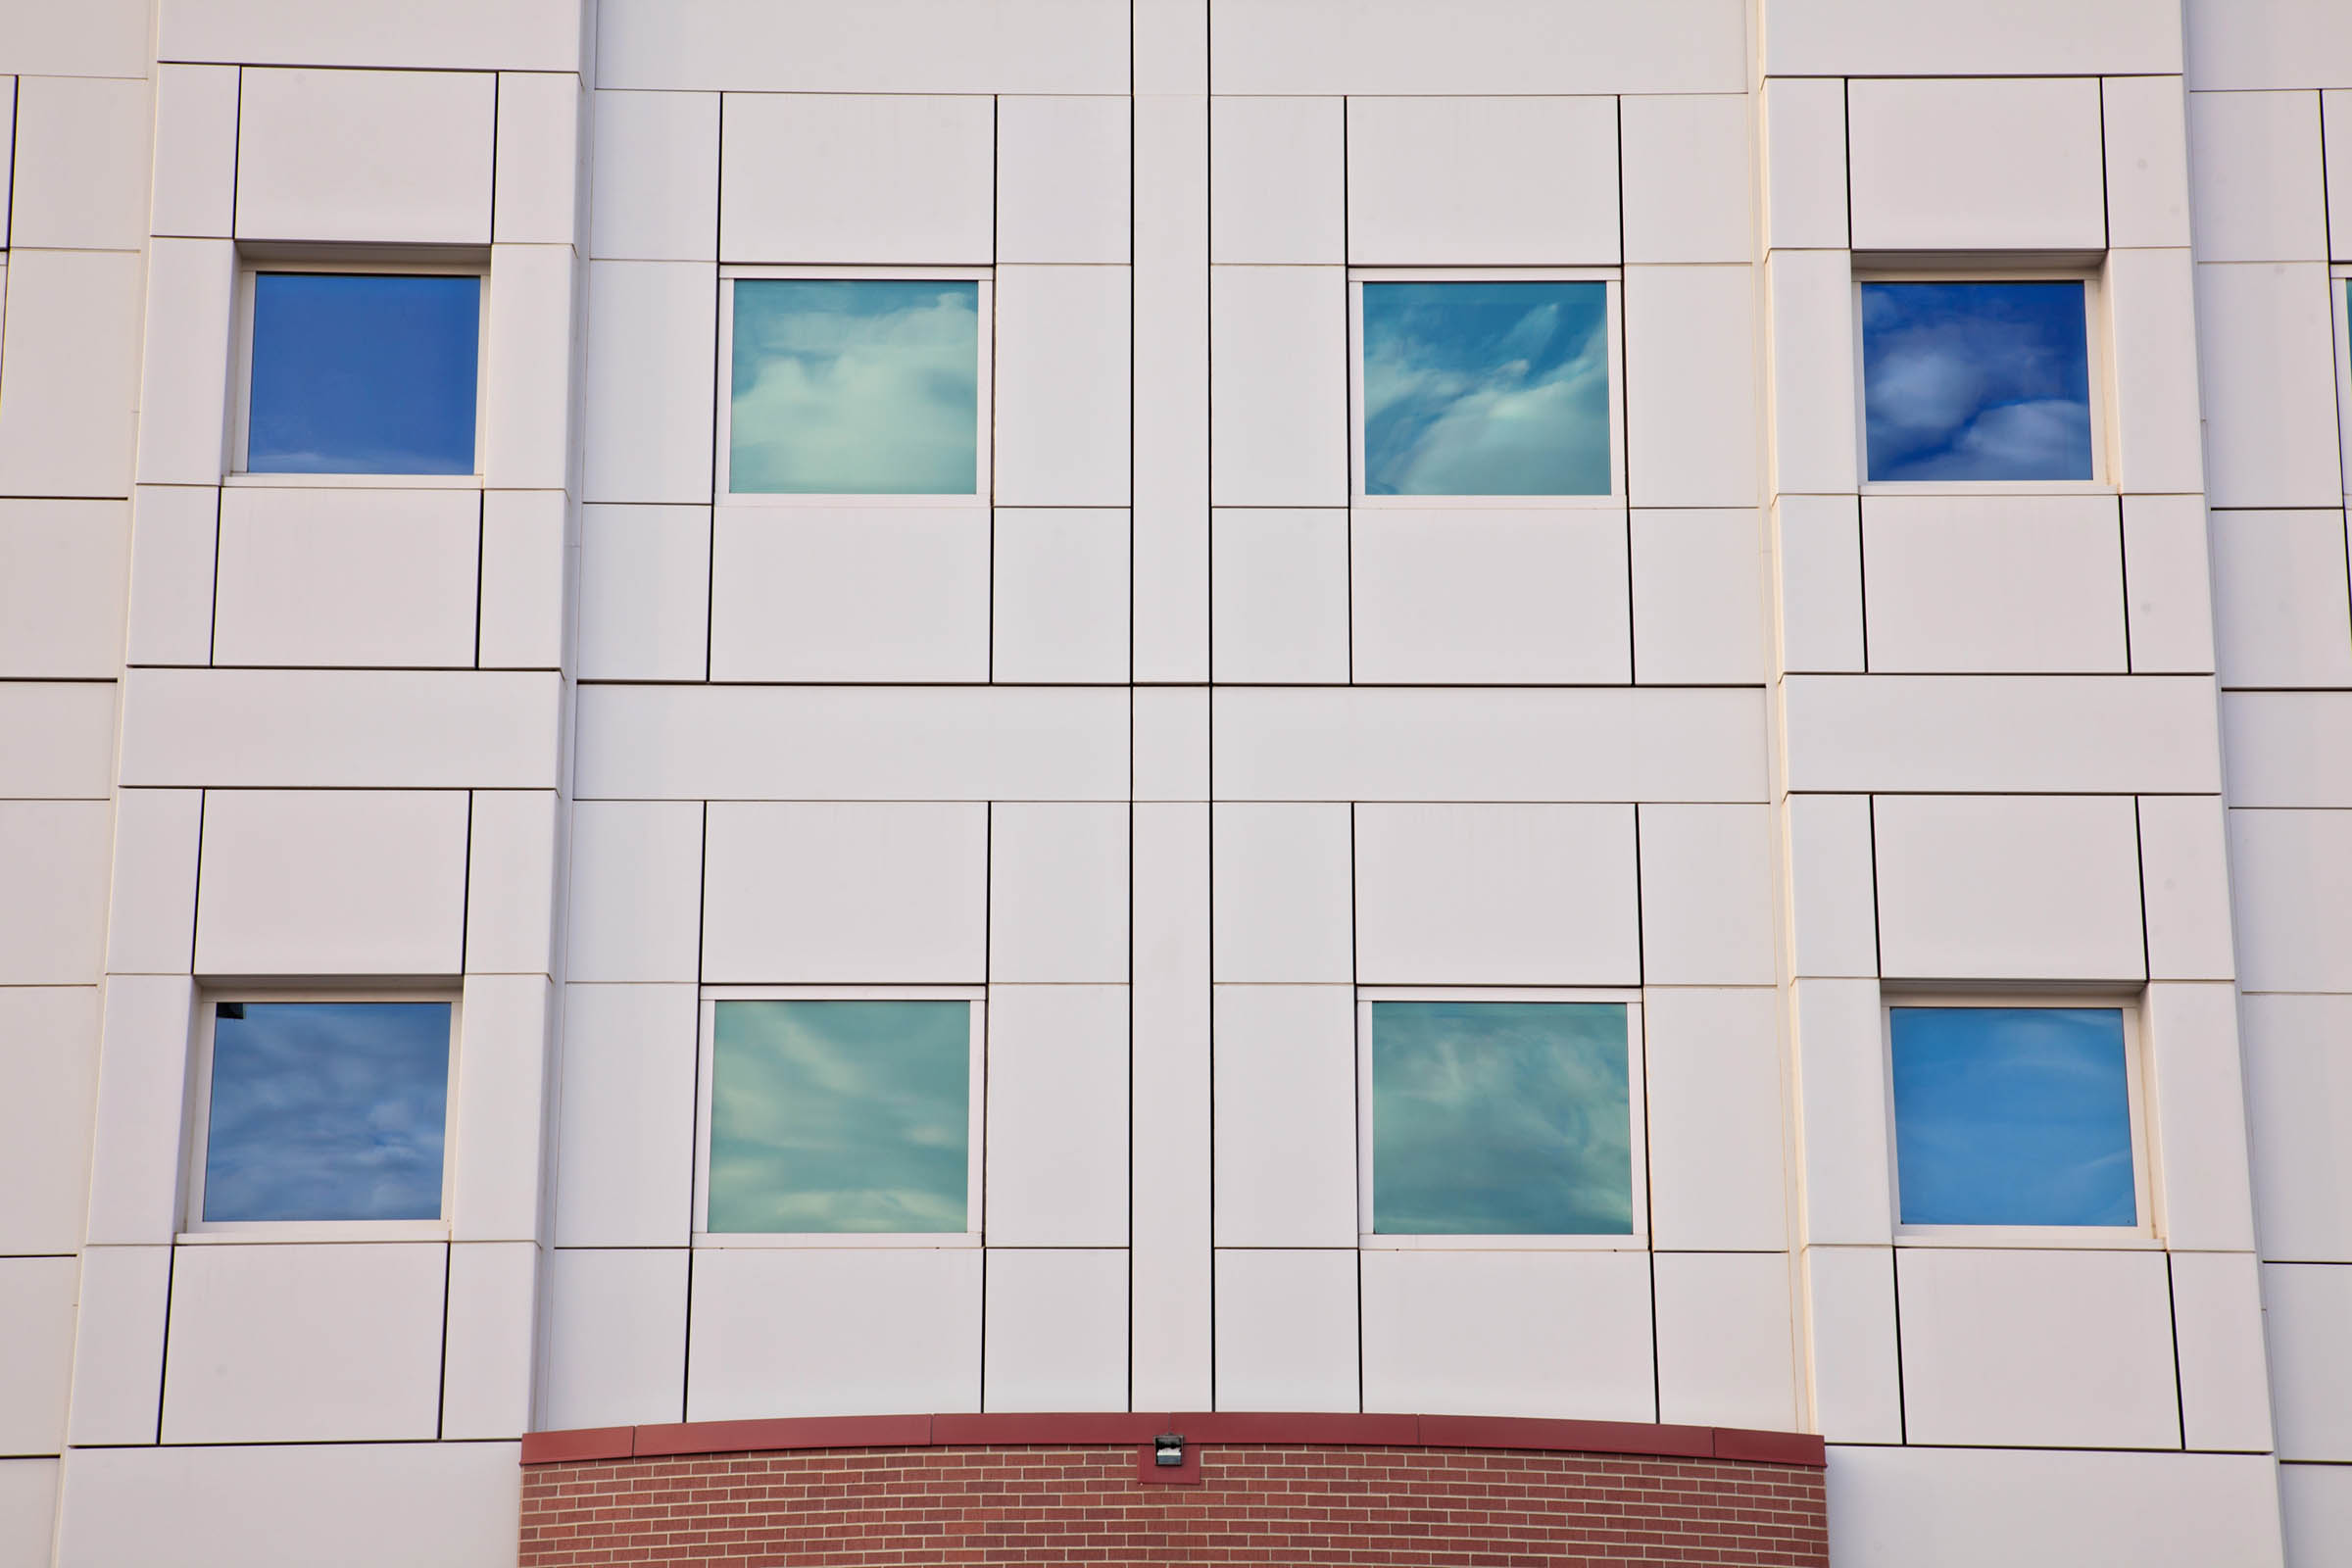 JCC-6gallery-windows-low-res.png